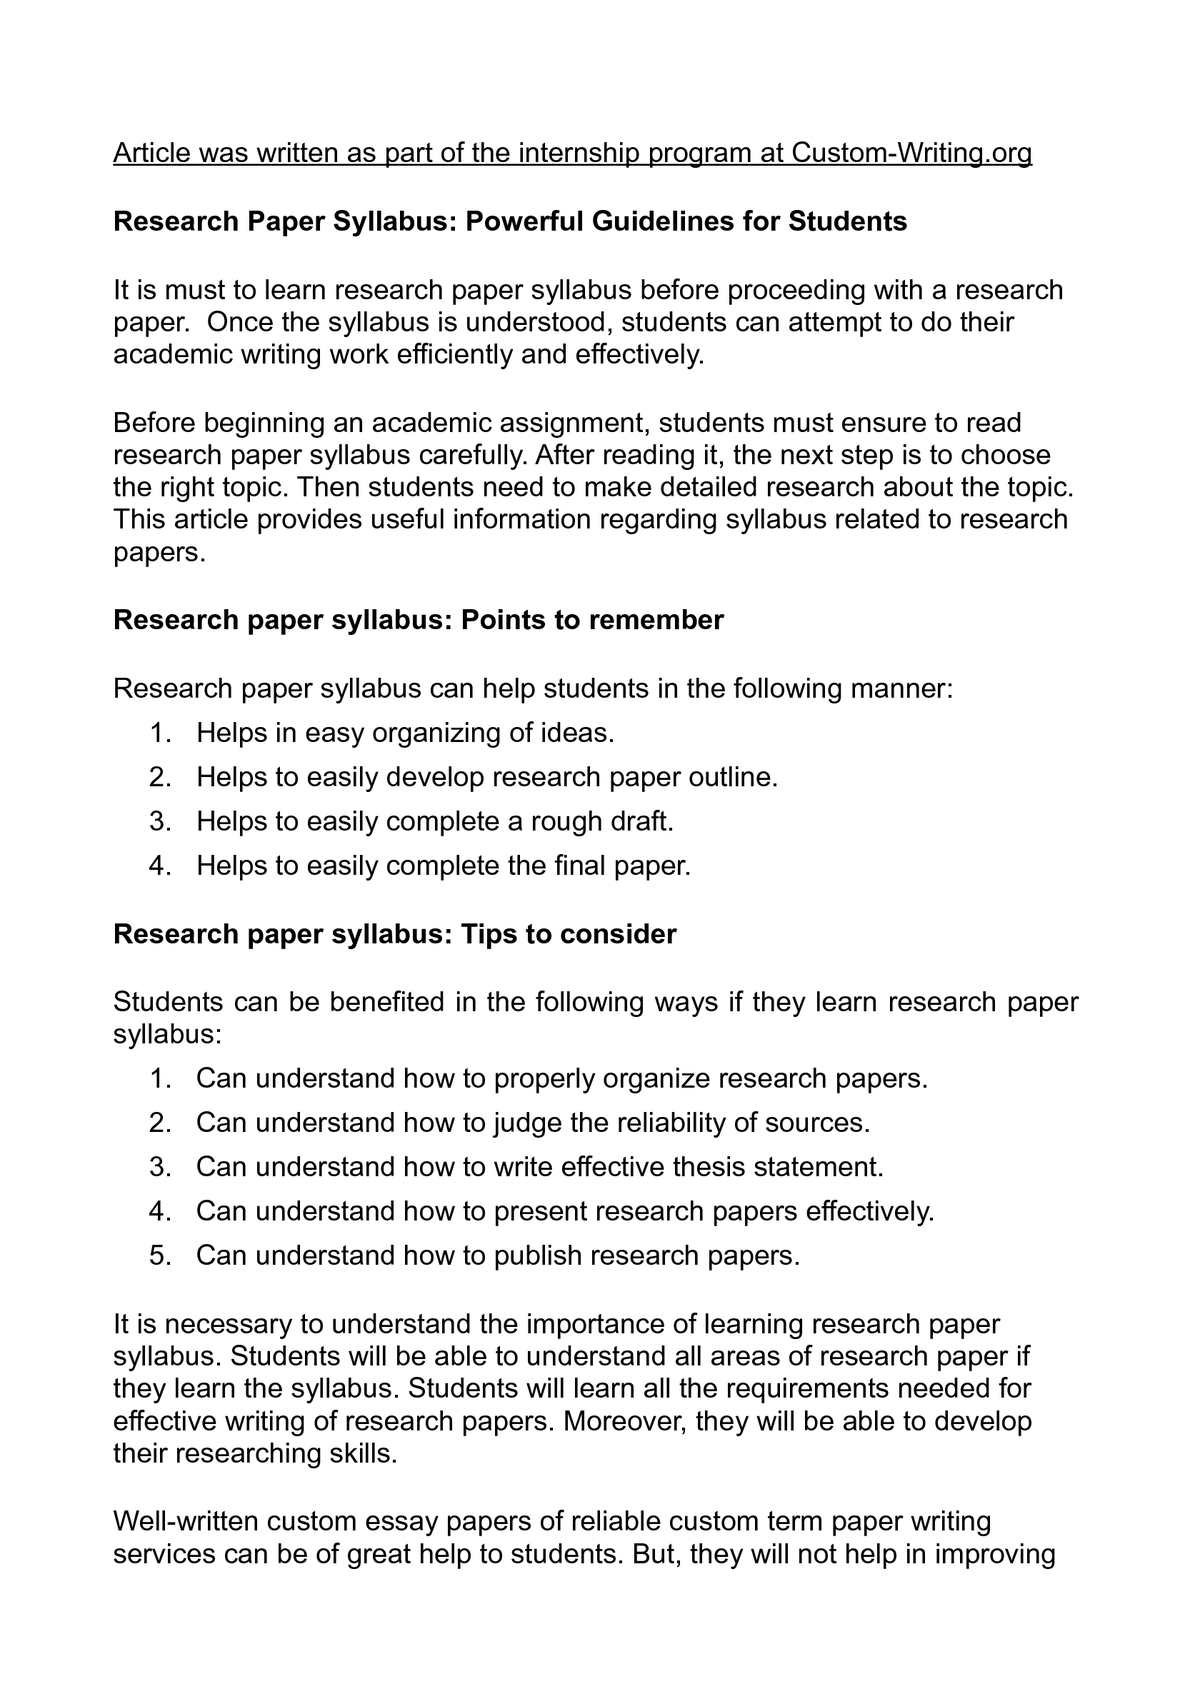 004 Provides Students With Custom Written Papers Research Paper Phenomenal Term Full